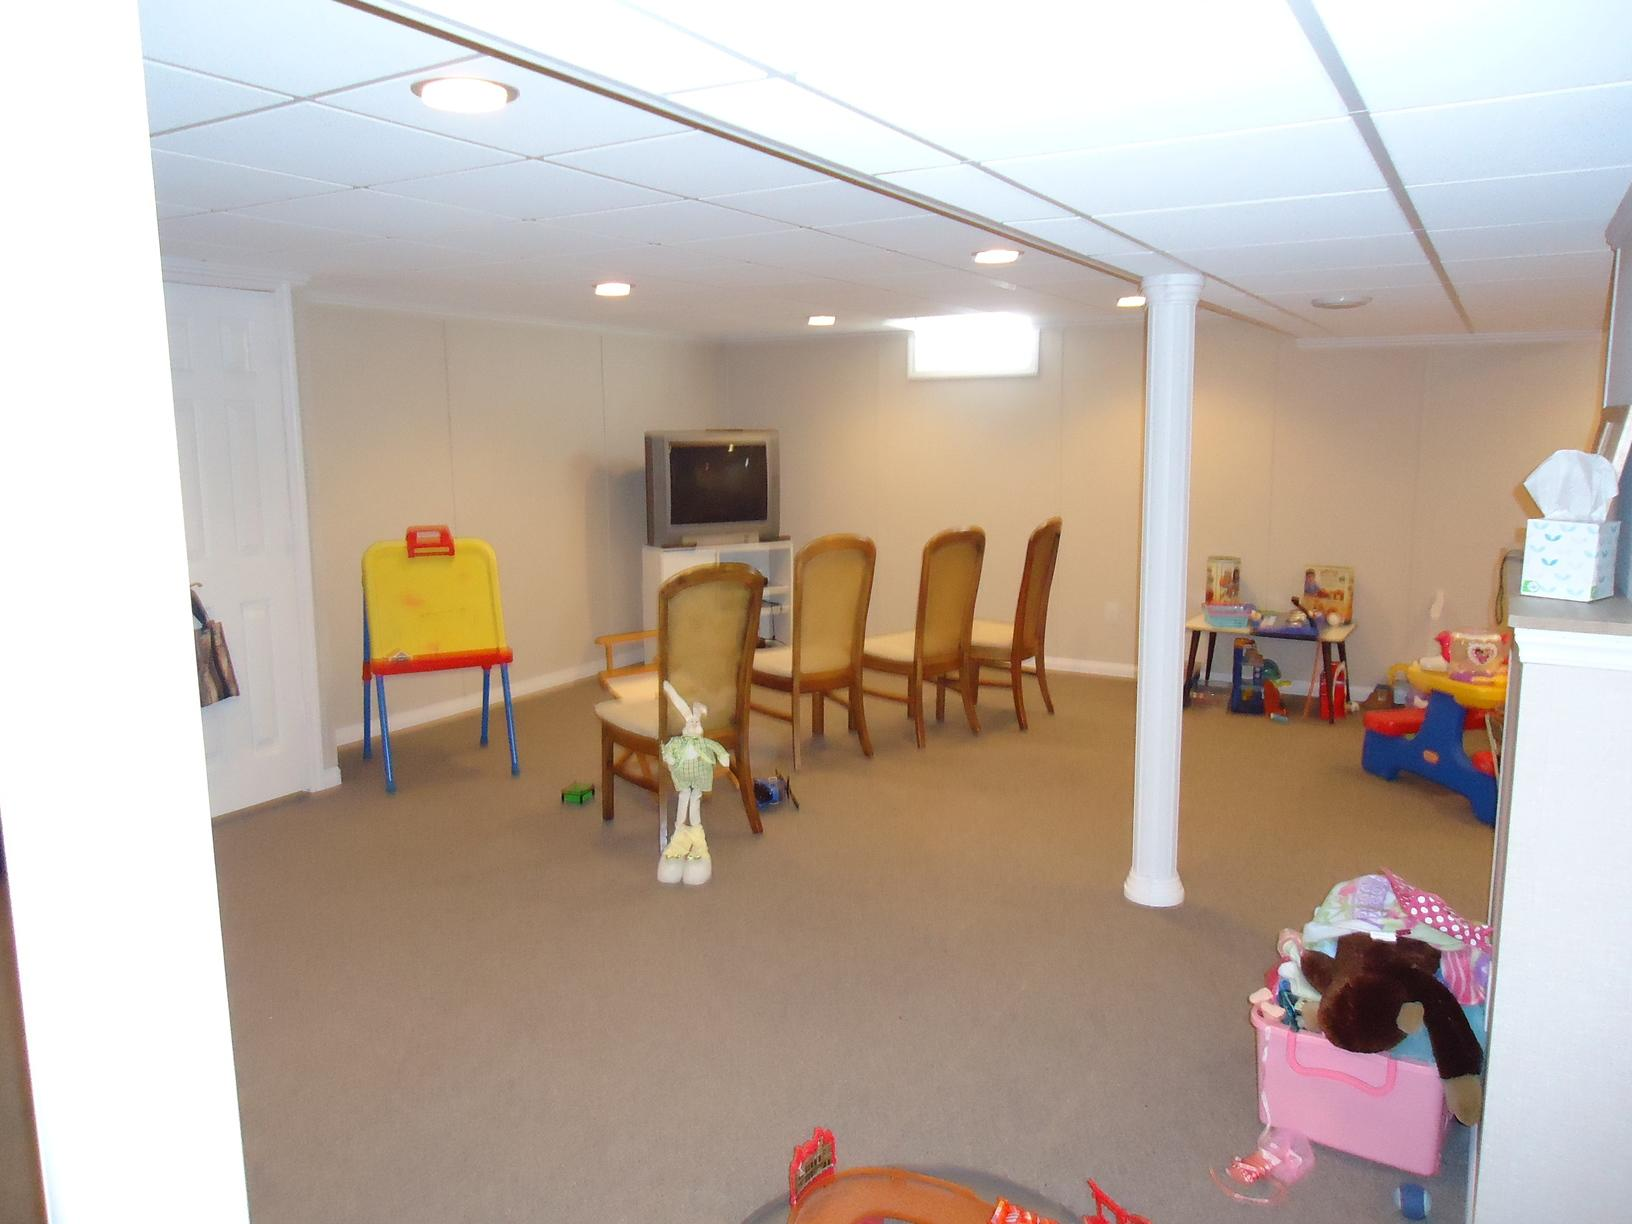 A Beautiful Basement and Kid's Play Room in New Berlin, WI!